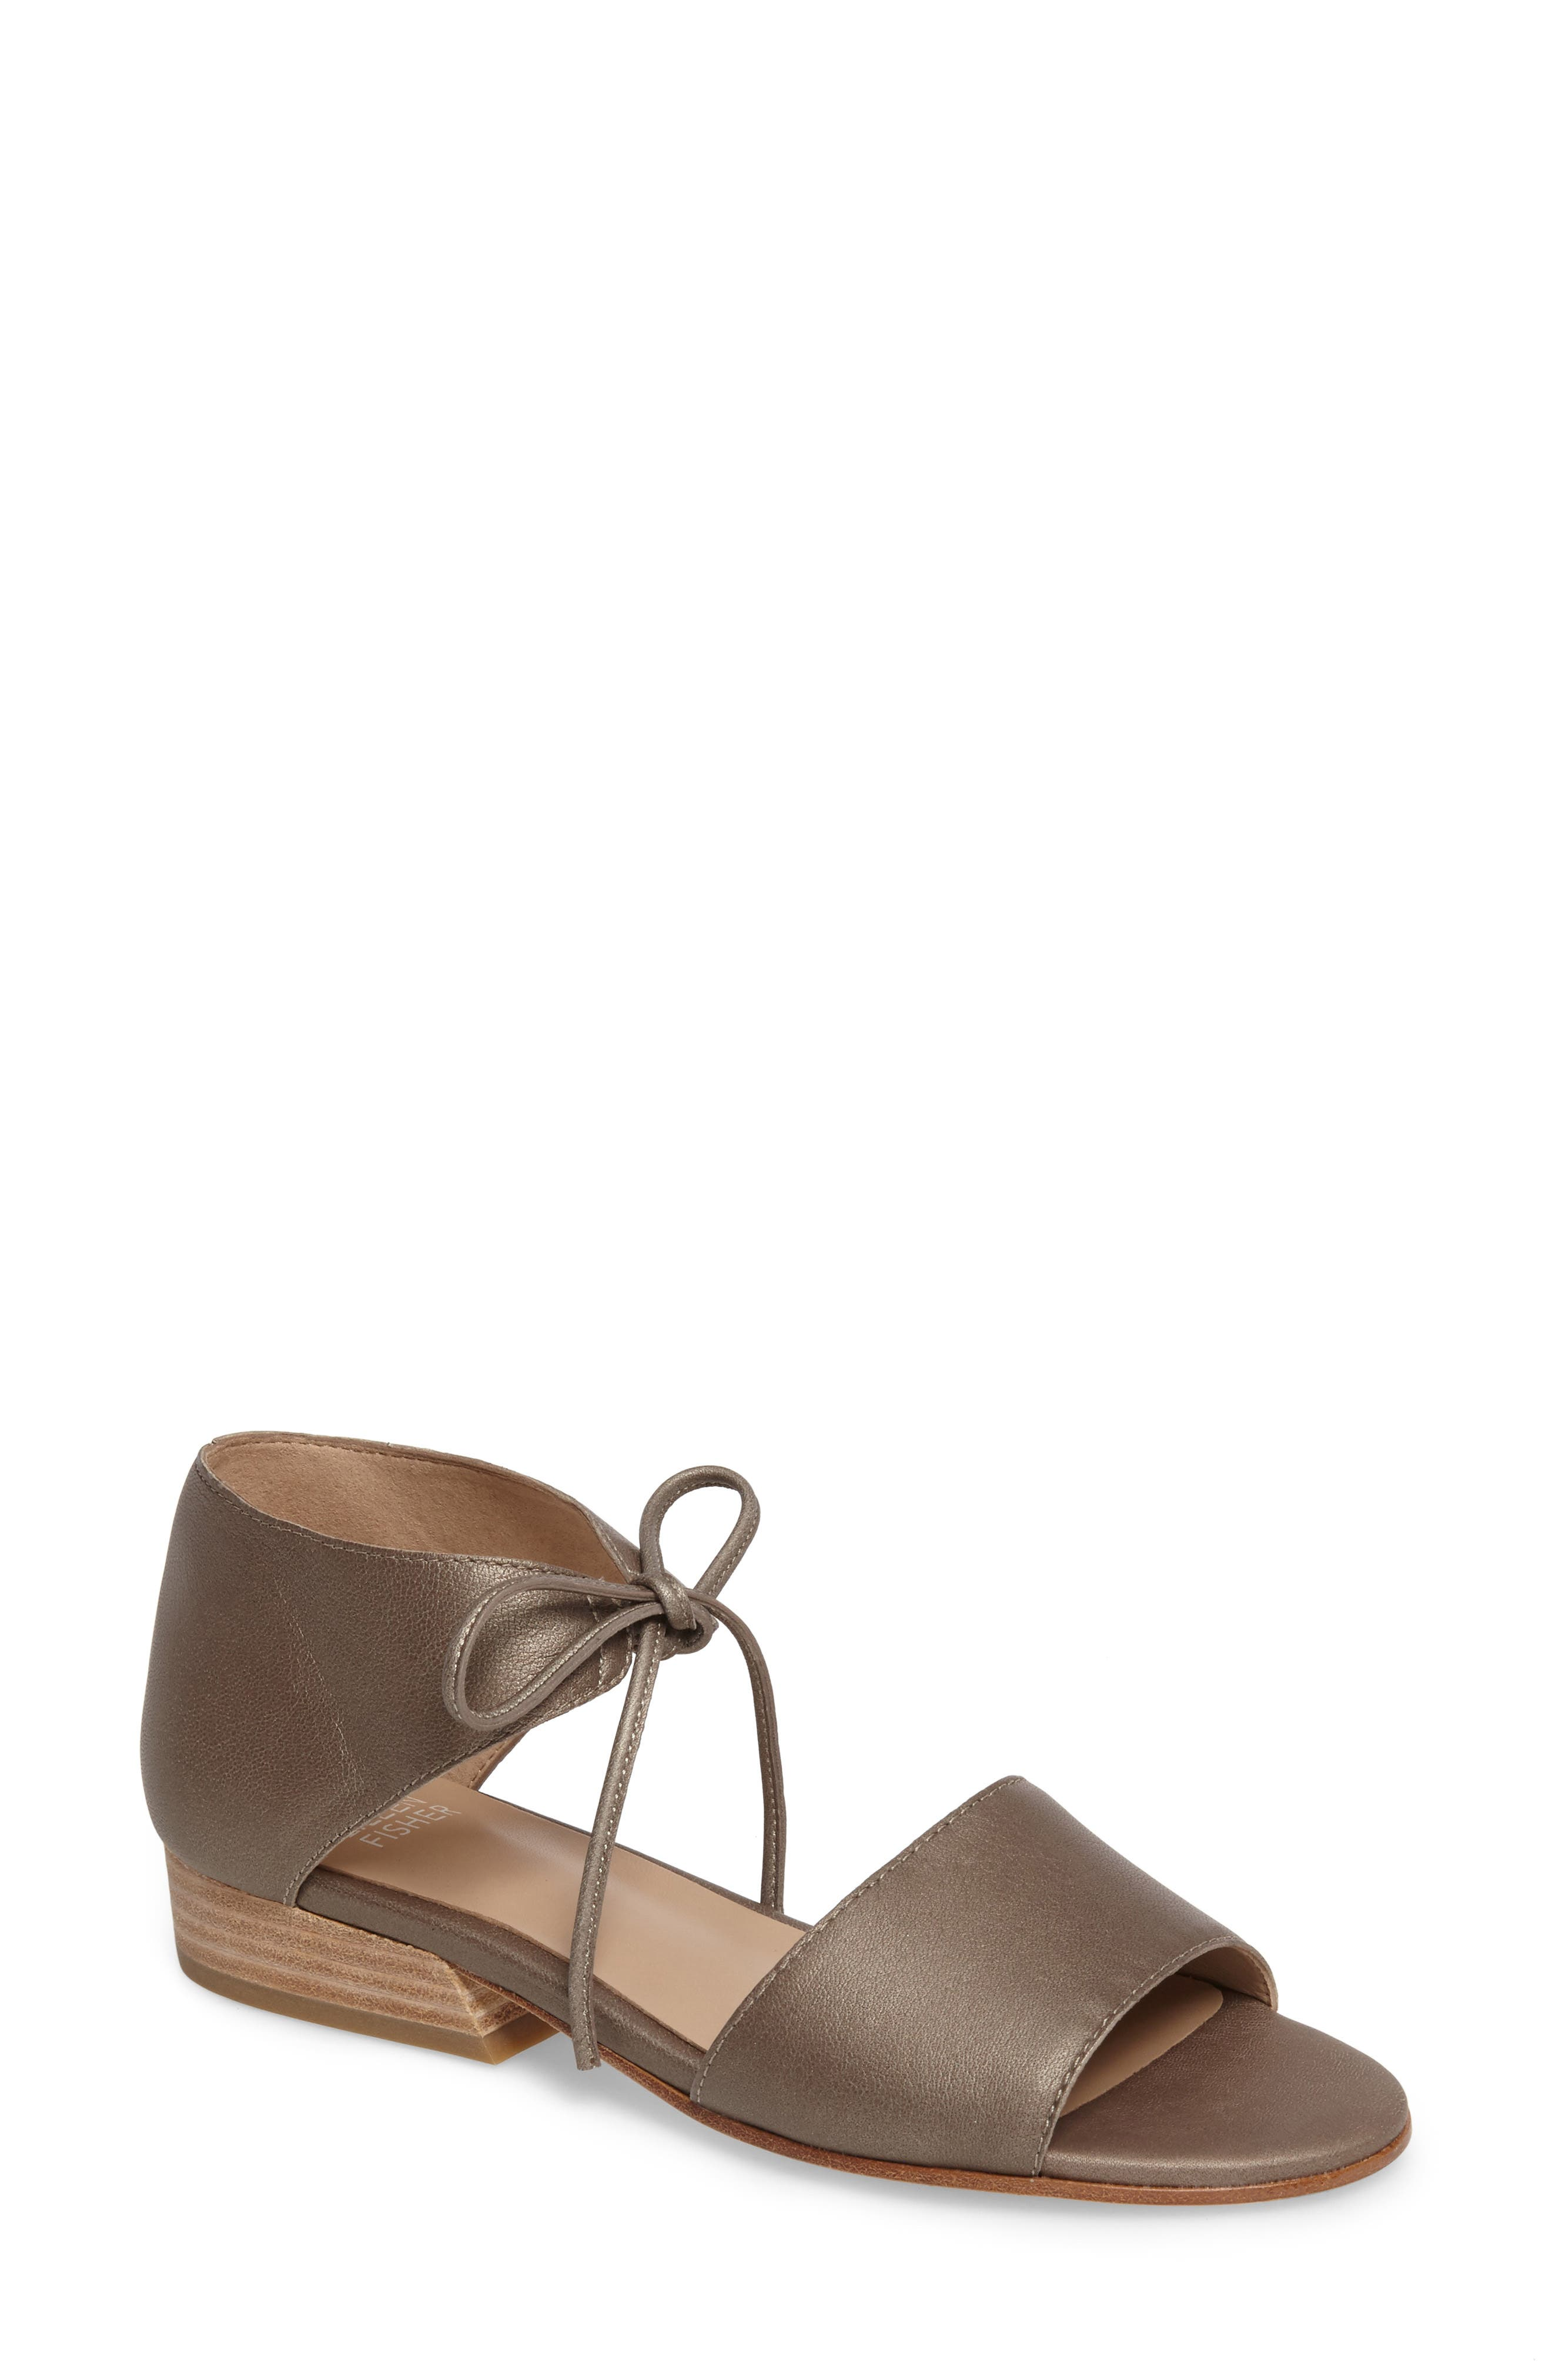 Ely Sandal,                         Main,                         color, 040